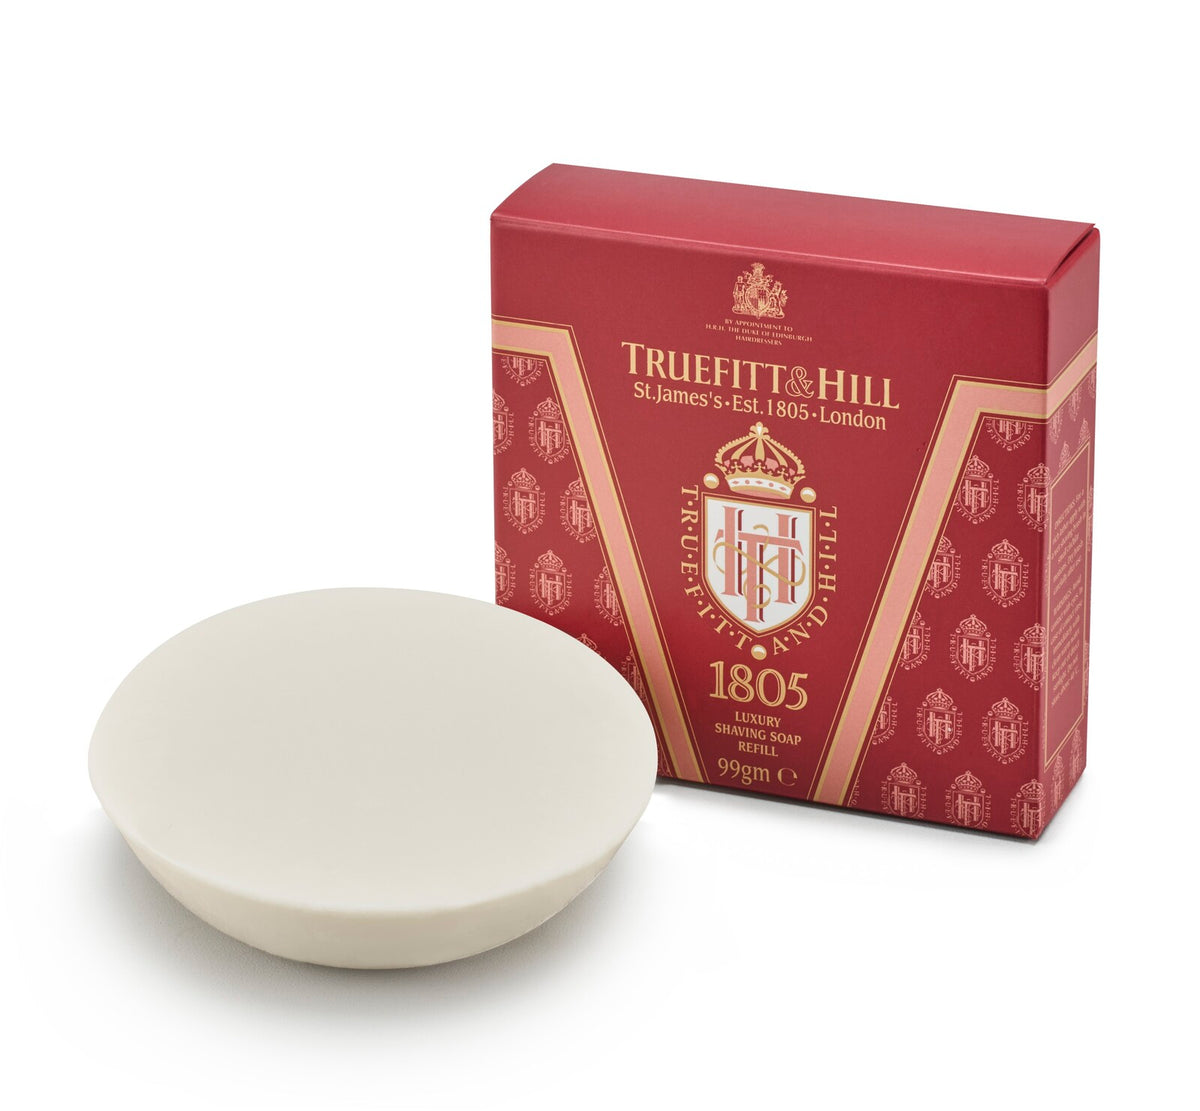 Truefitt & Hill Luxury Shave Soap Refill 99g - 1805